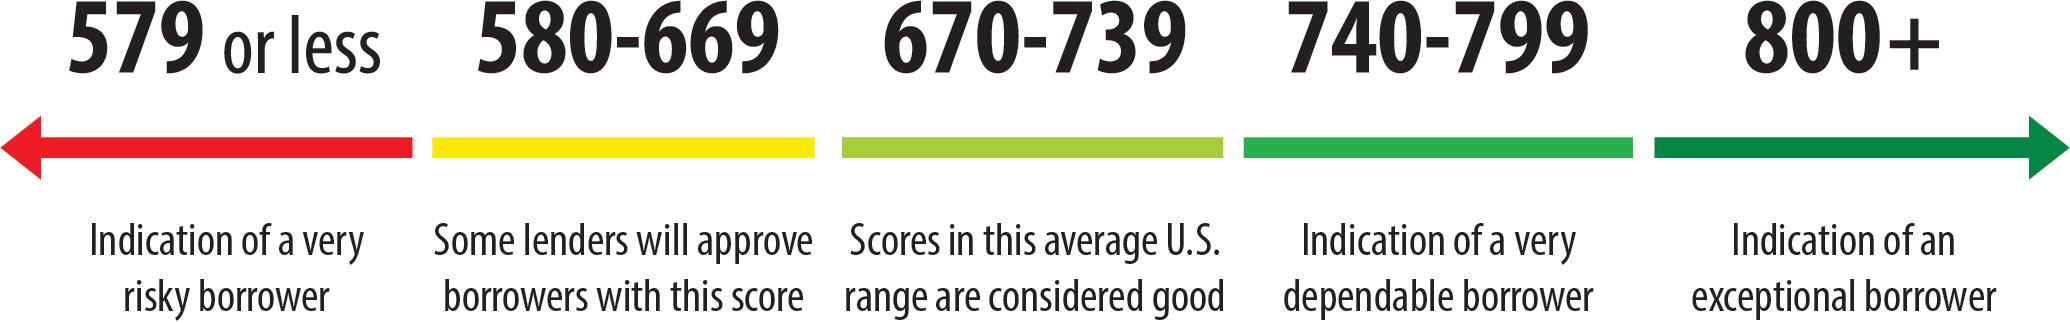 FICO score range - 579 or less is an indication of a risky borrower, 580-669 some lenders will approve borrowers with these scores, 670-739 is the average score range in the U.S. and is considered good, 740-799 is an indication of a very dependable borrower, and 800+ is an indication of an exceptional borrower